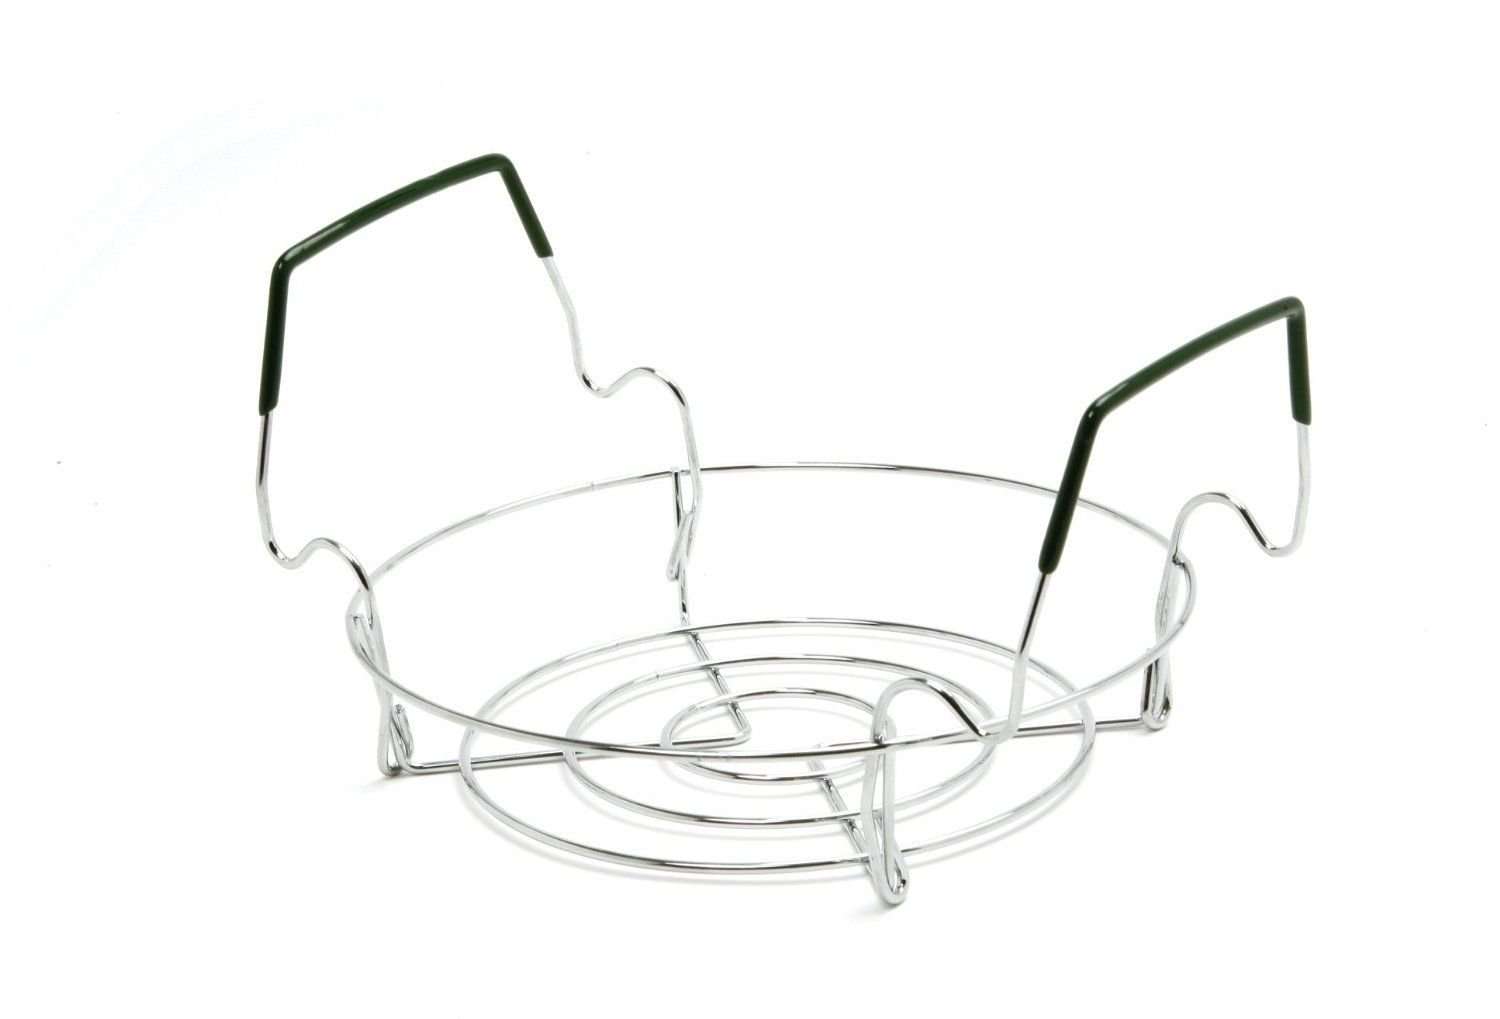 Norpro Chromed Steel Small Folding Canning Preserving Rack; Comfort Grip Handles